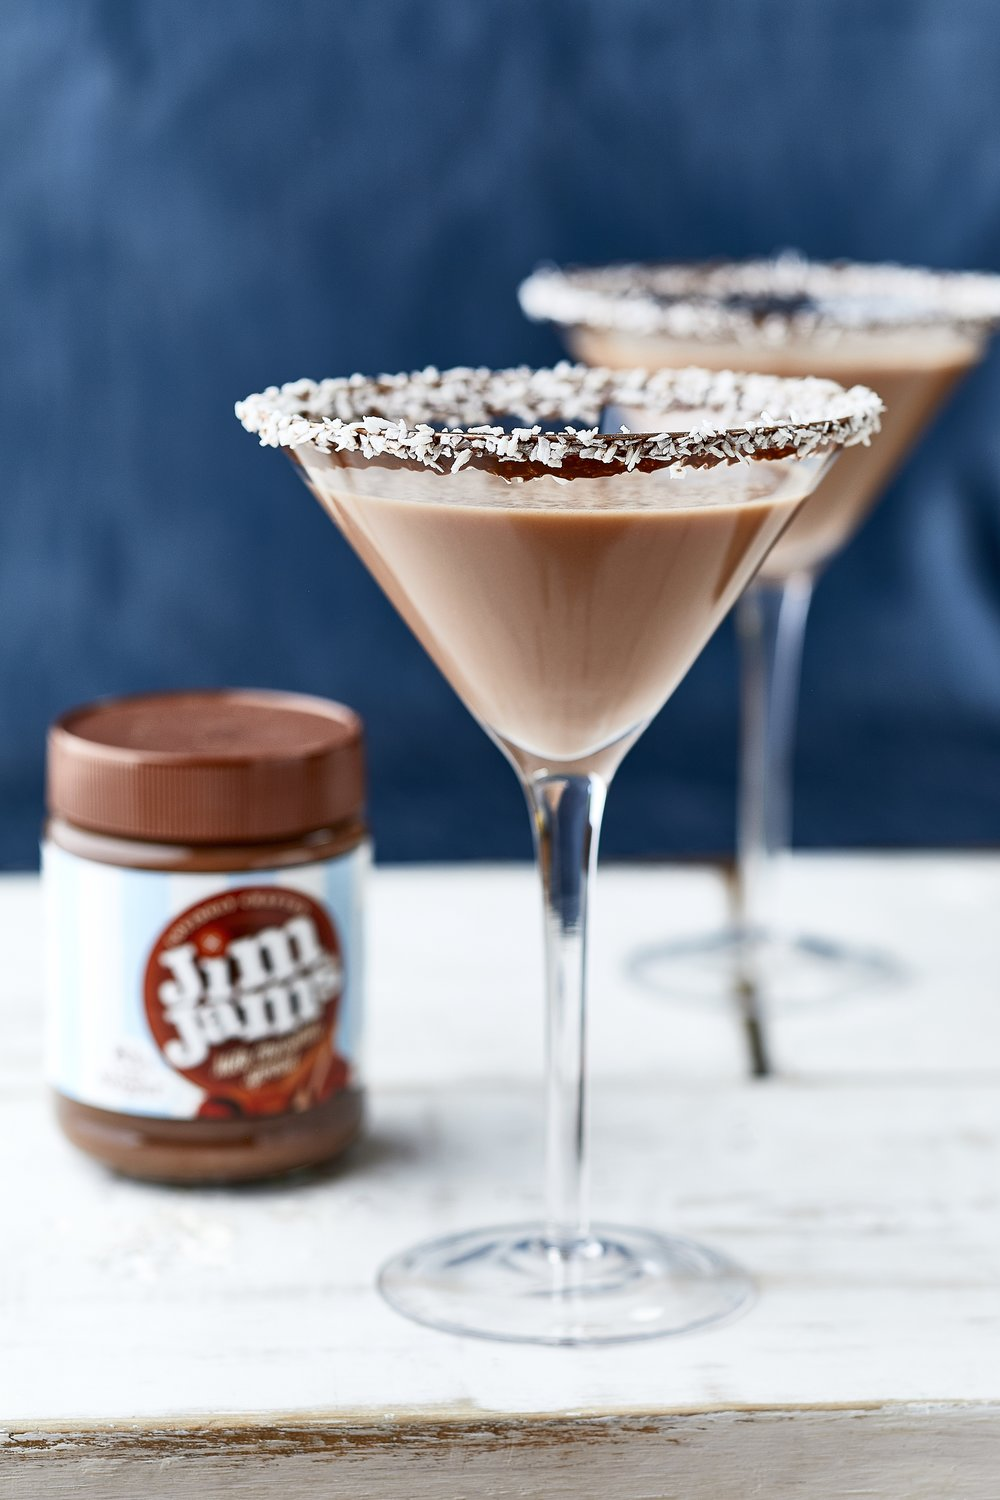 JimJams Choconut Martini